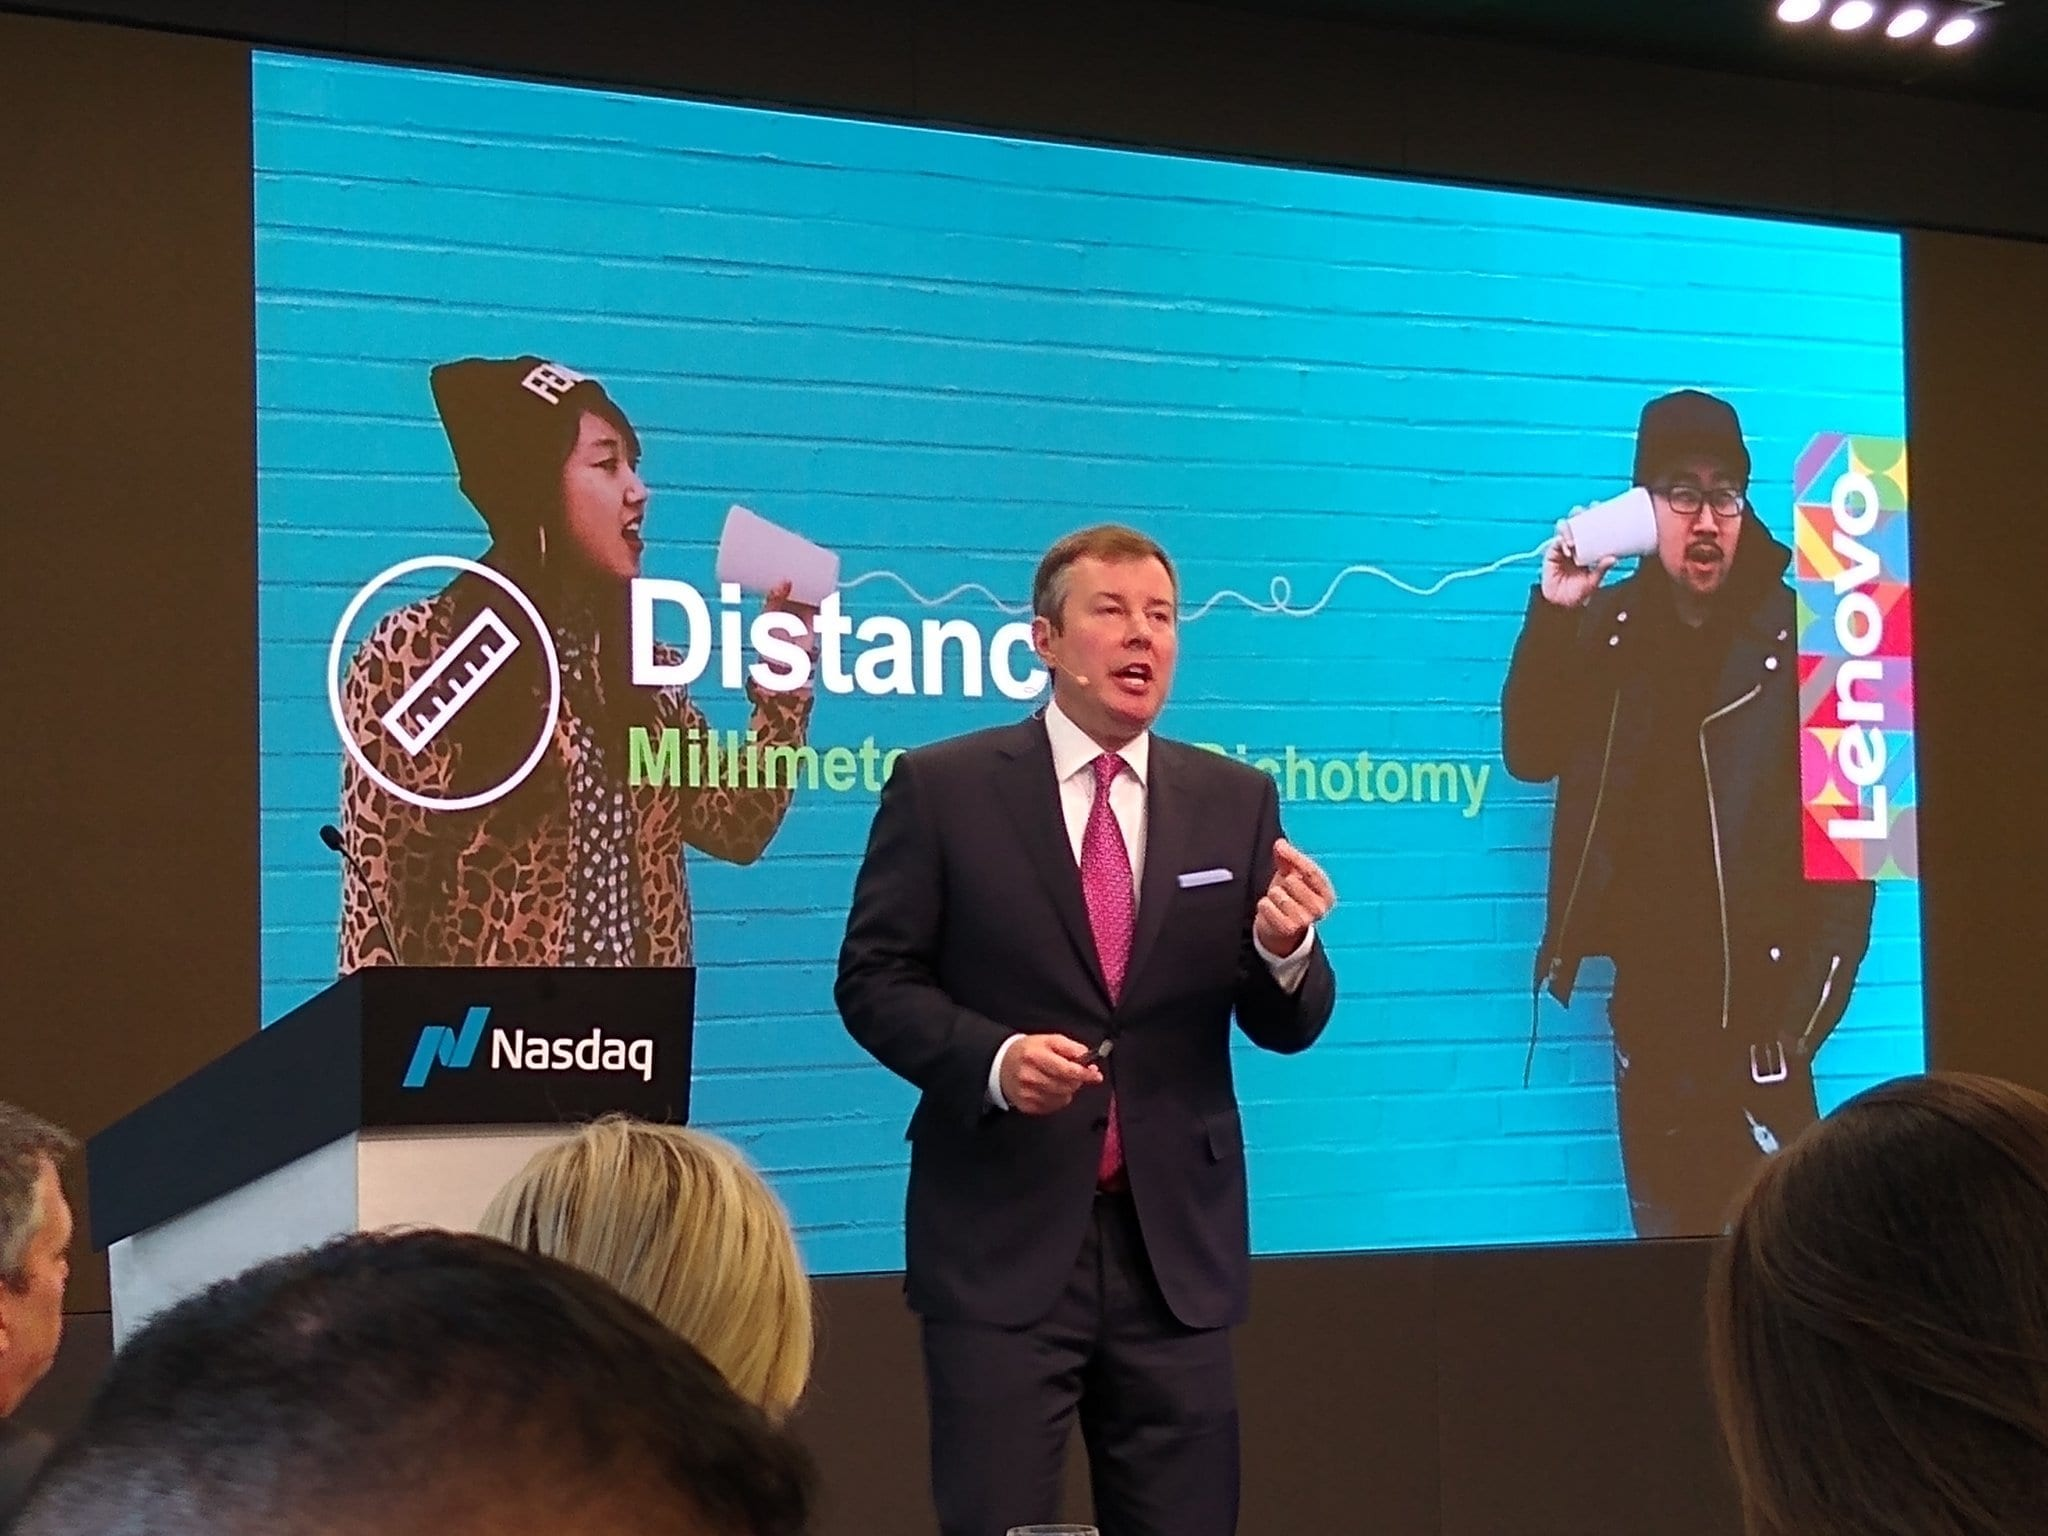 National Cyber Security Alliance (NCSA) conference at NASDAQ.